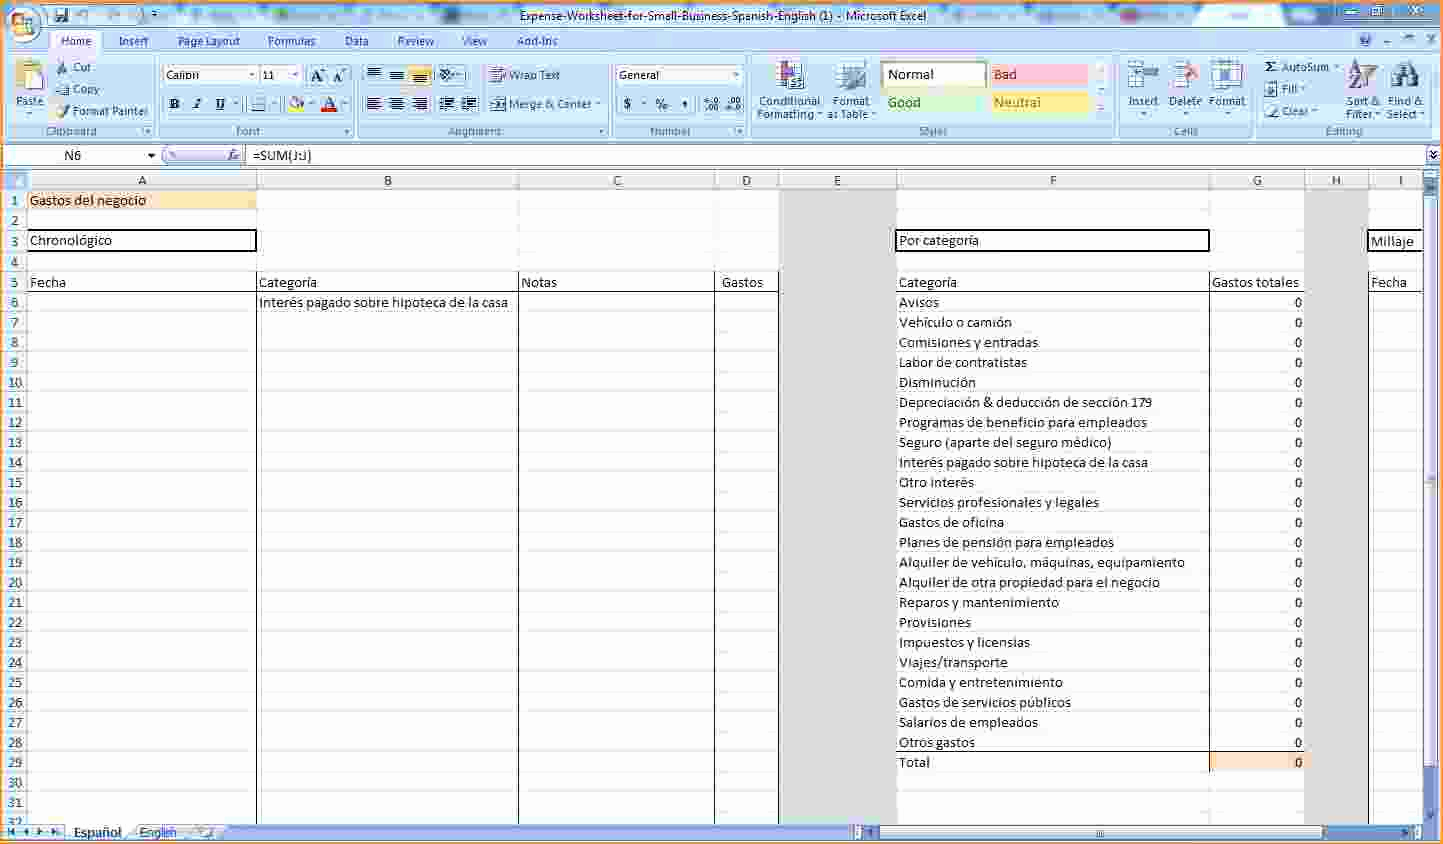 Track Your Expenses Spreadsheet For Keeping Track Of Expenses Spreadsheet – Theomega.ca